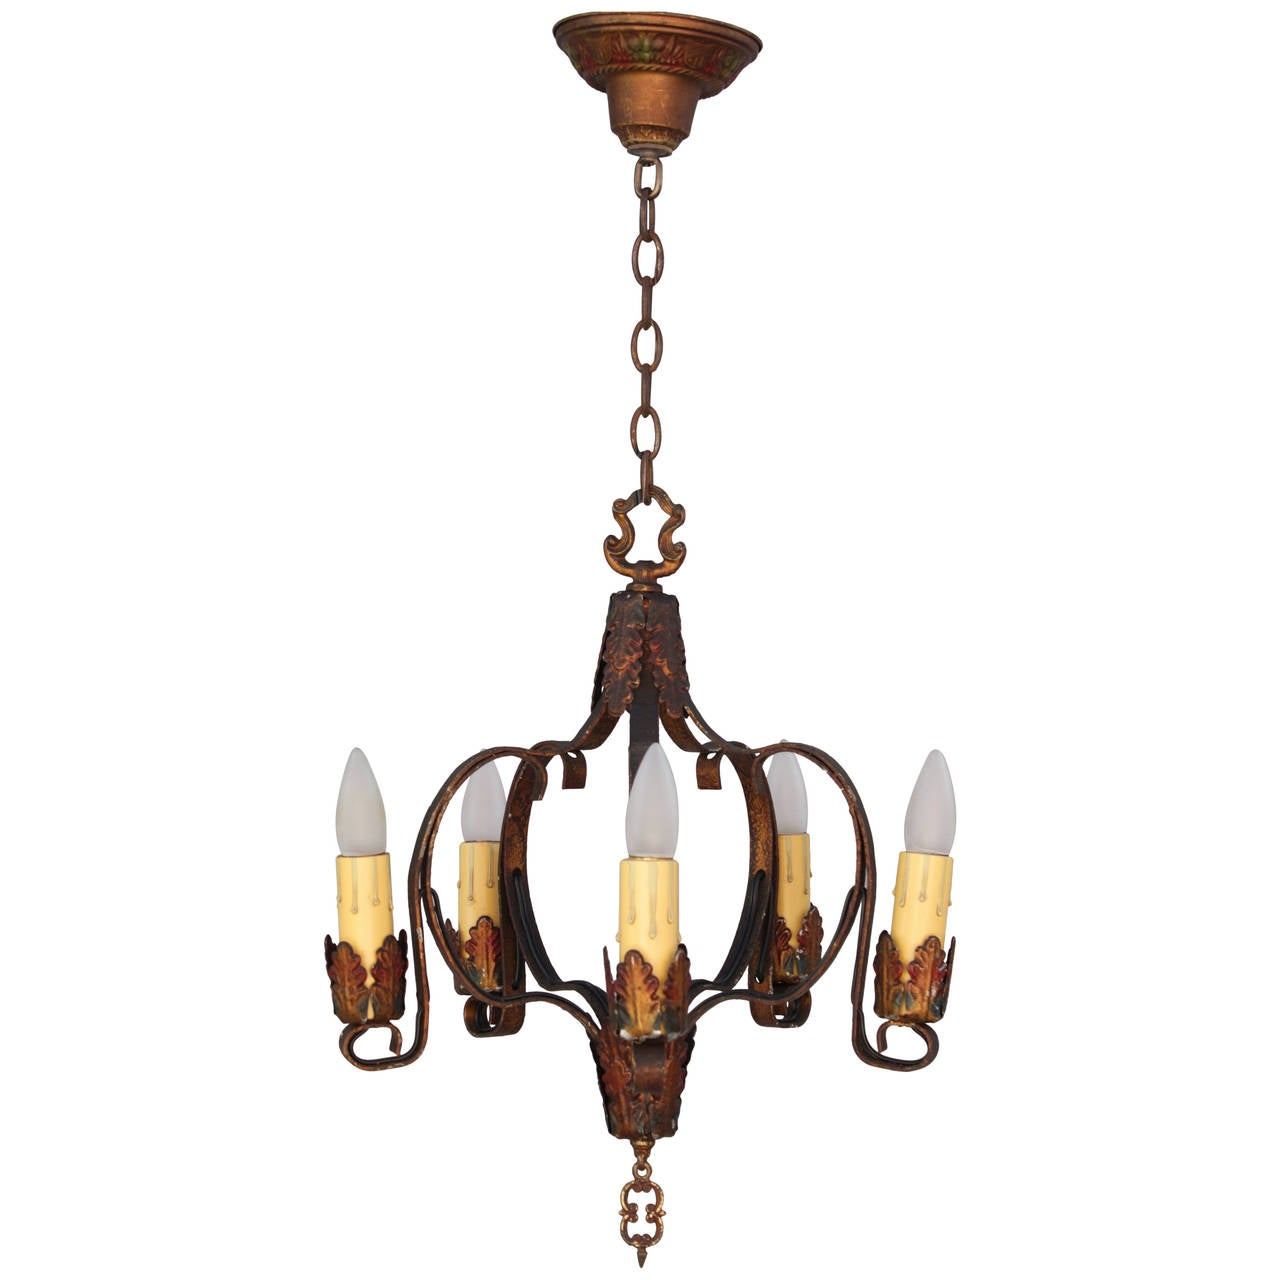 Antique Five Light Polychrome Spanish Revival Chandelier